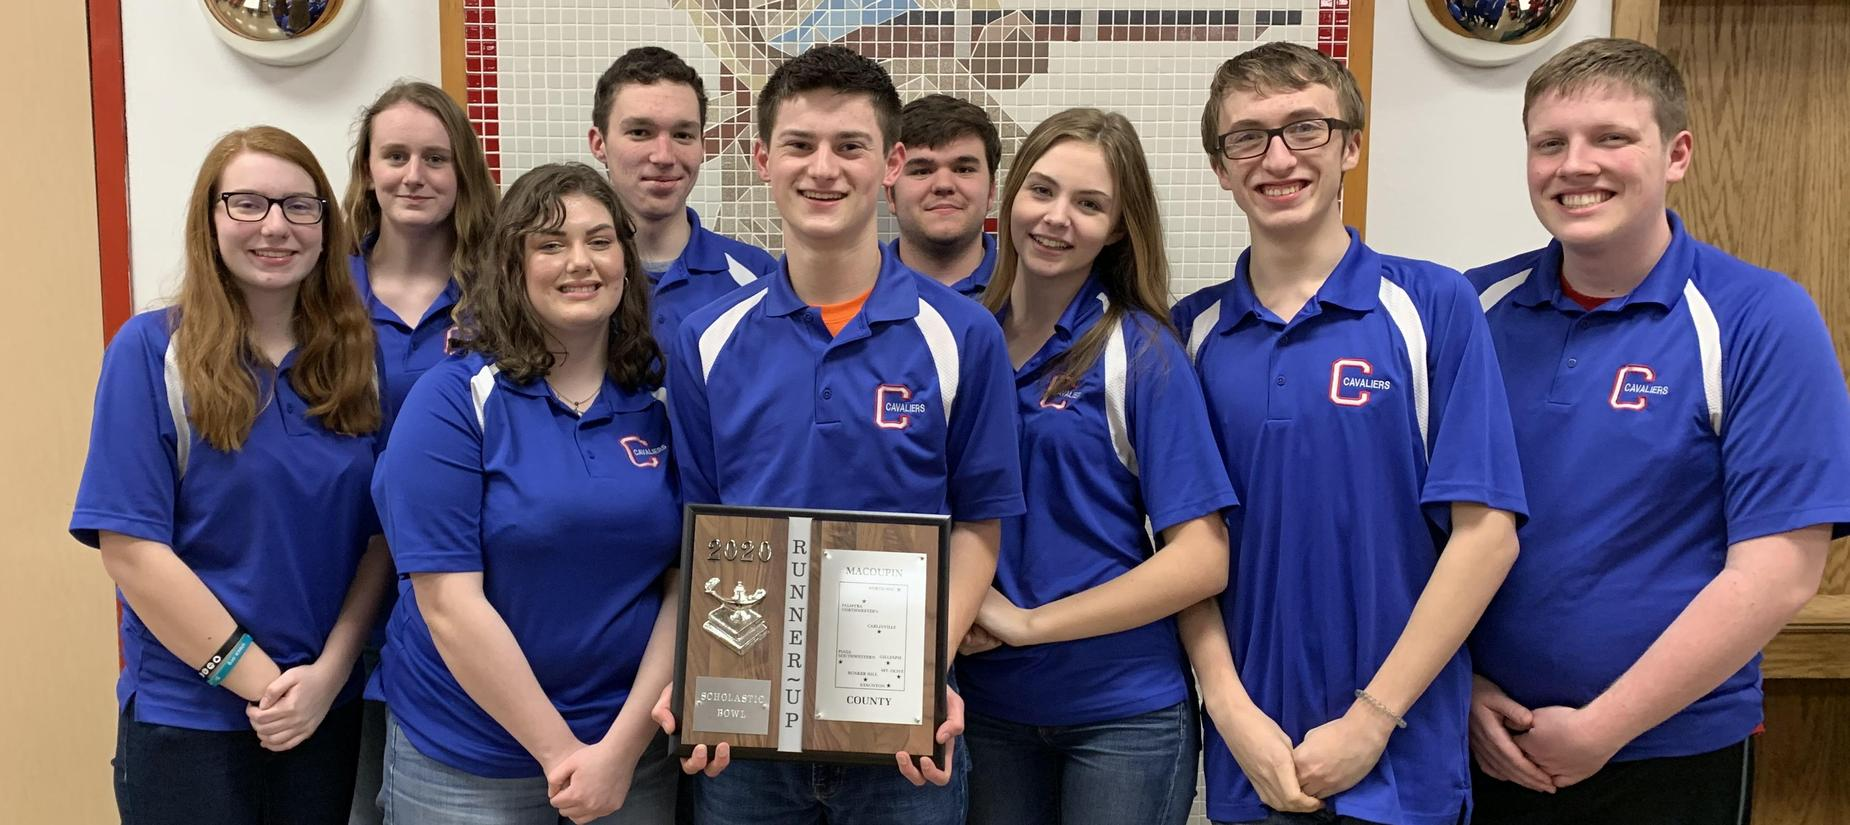 CHS Scholastic Bowl team places 2nd at County Tournament